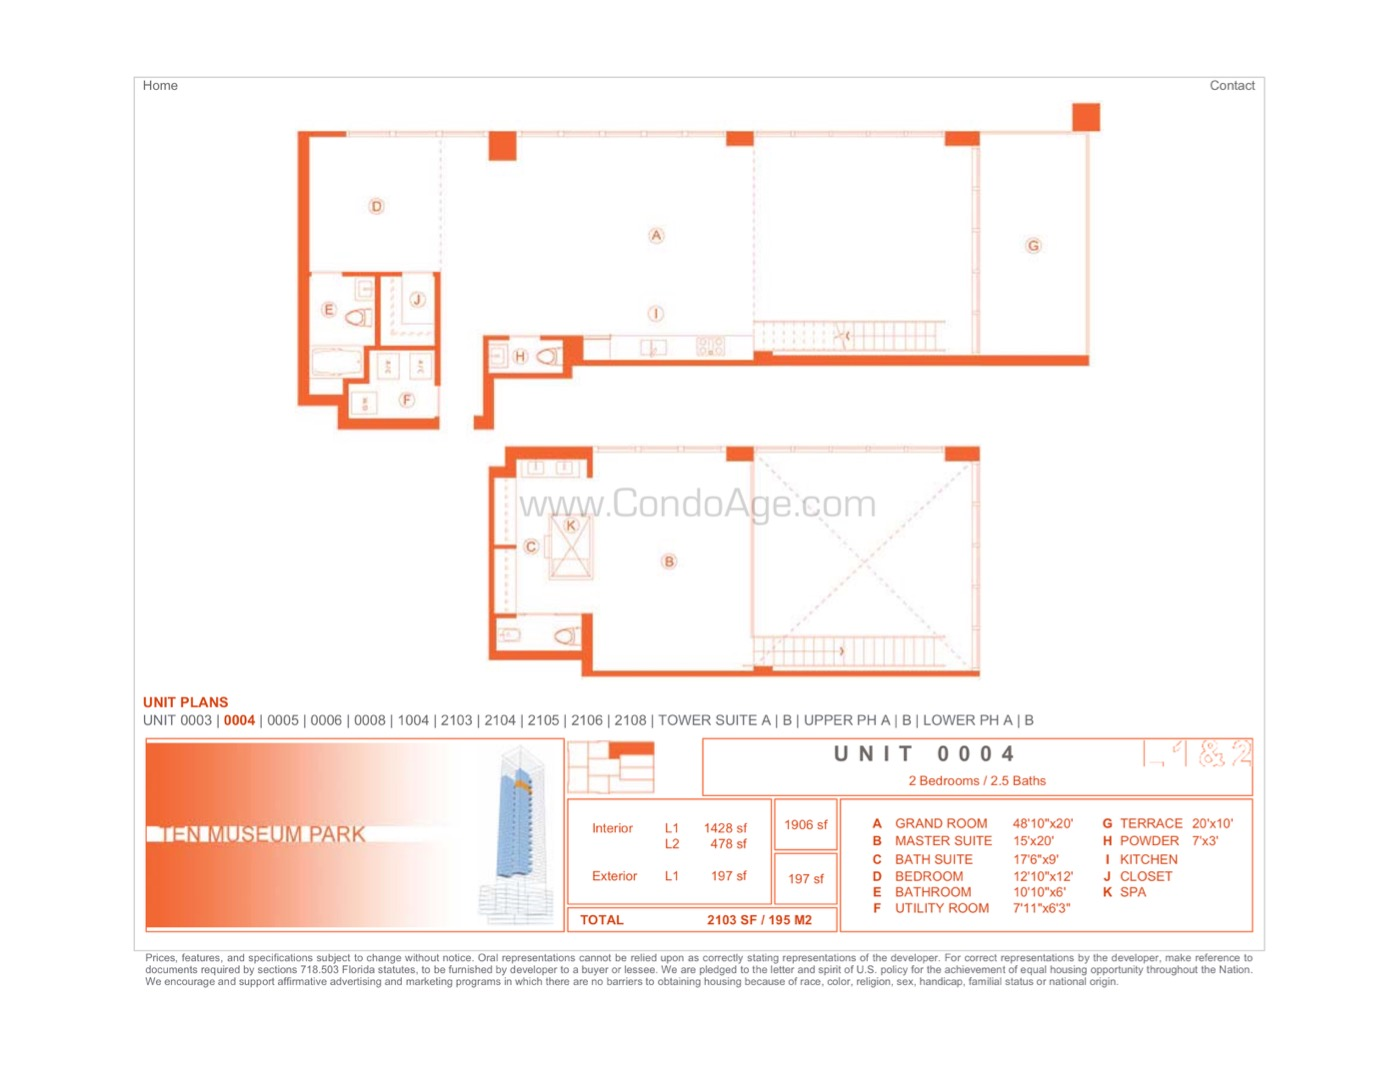 04 floor plan image